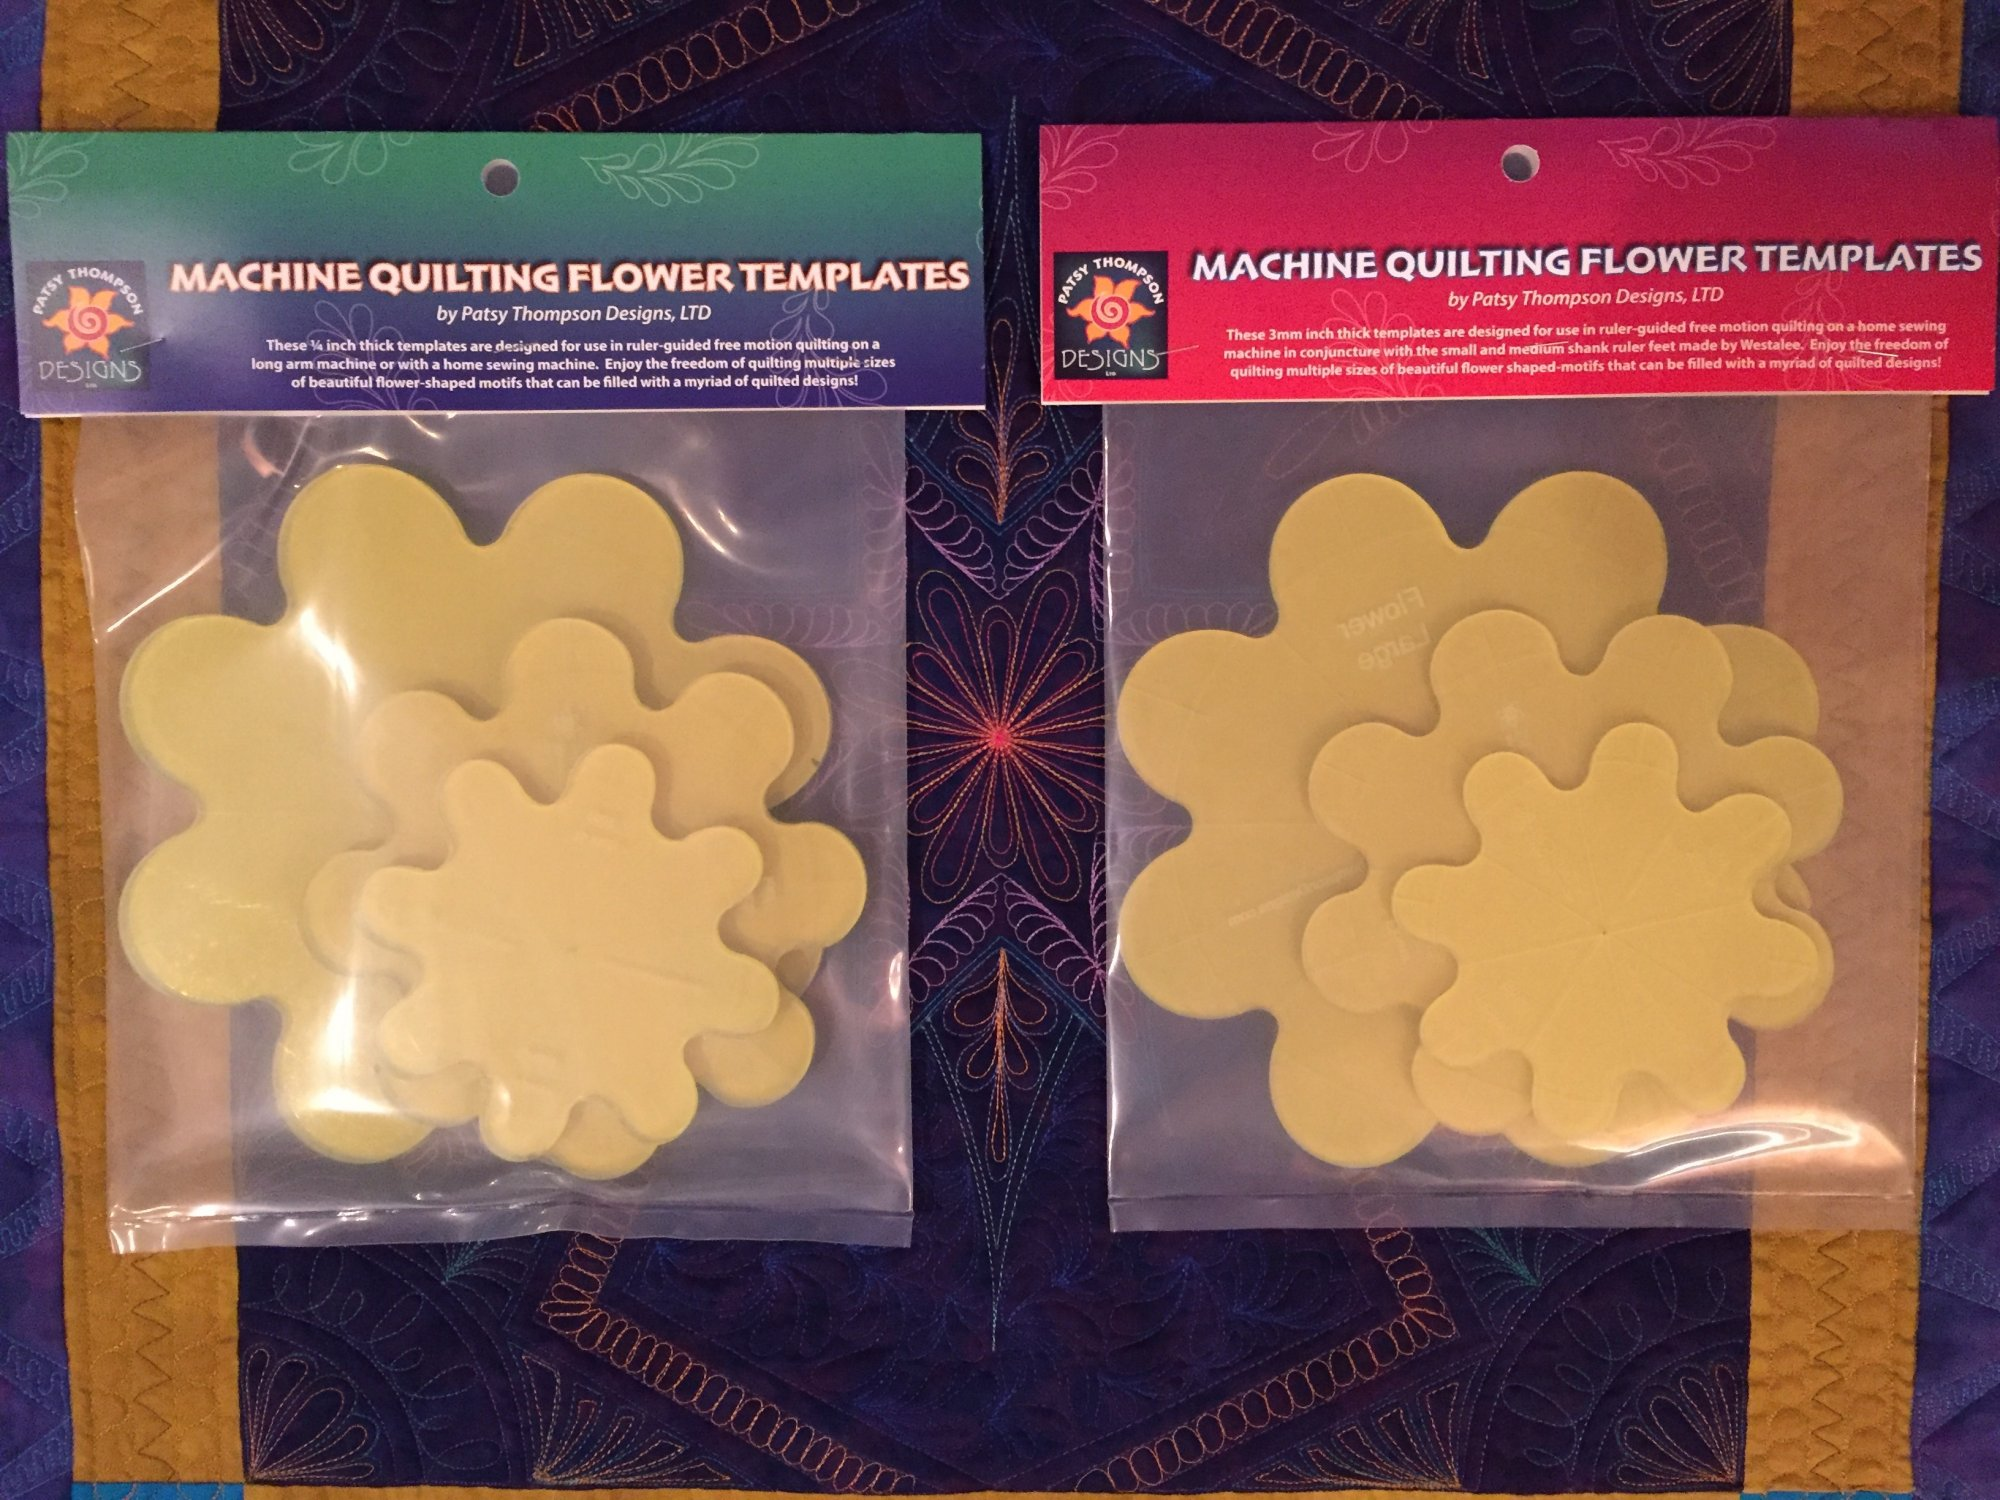 Machine Quilting Flower Templates by Patsy Thompson